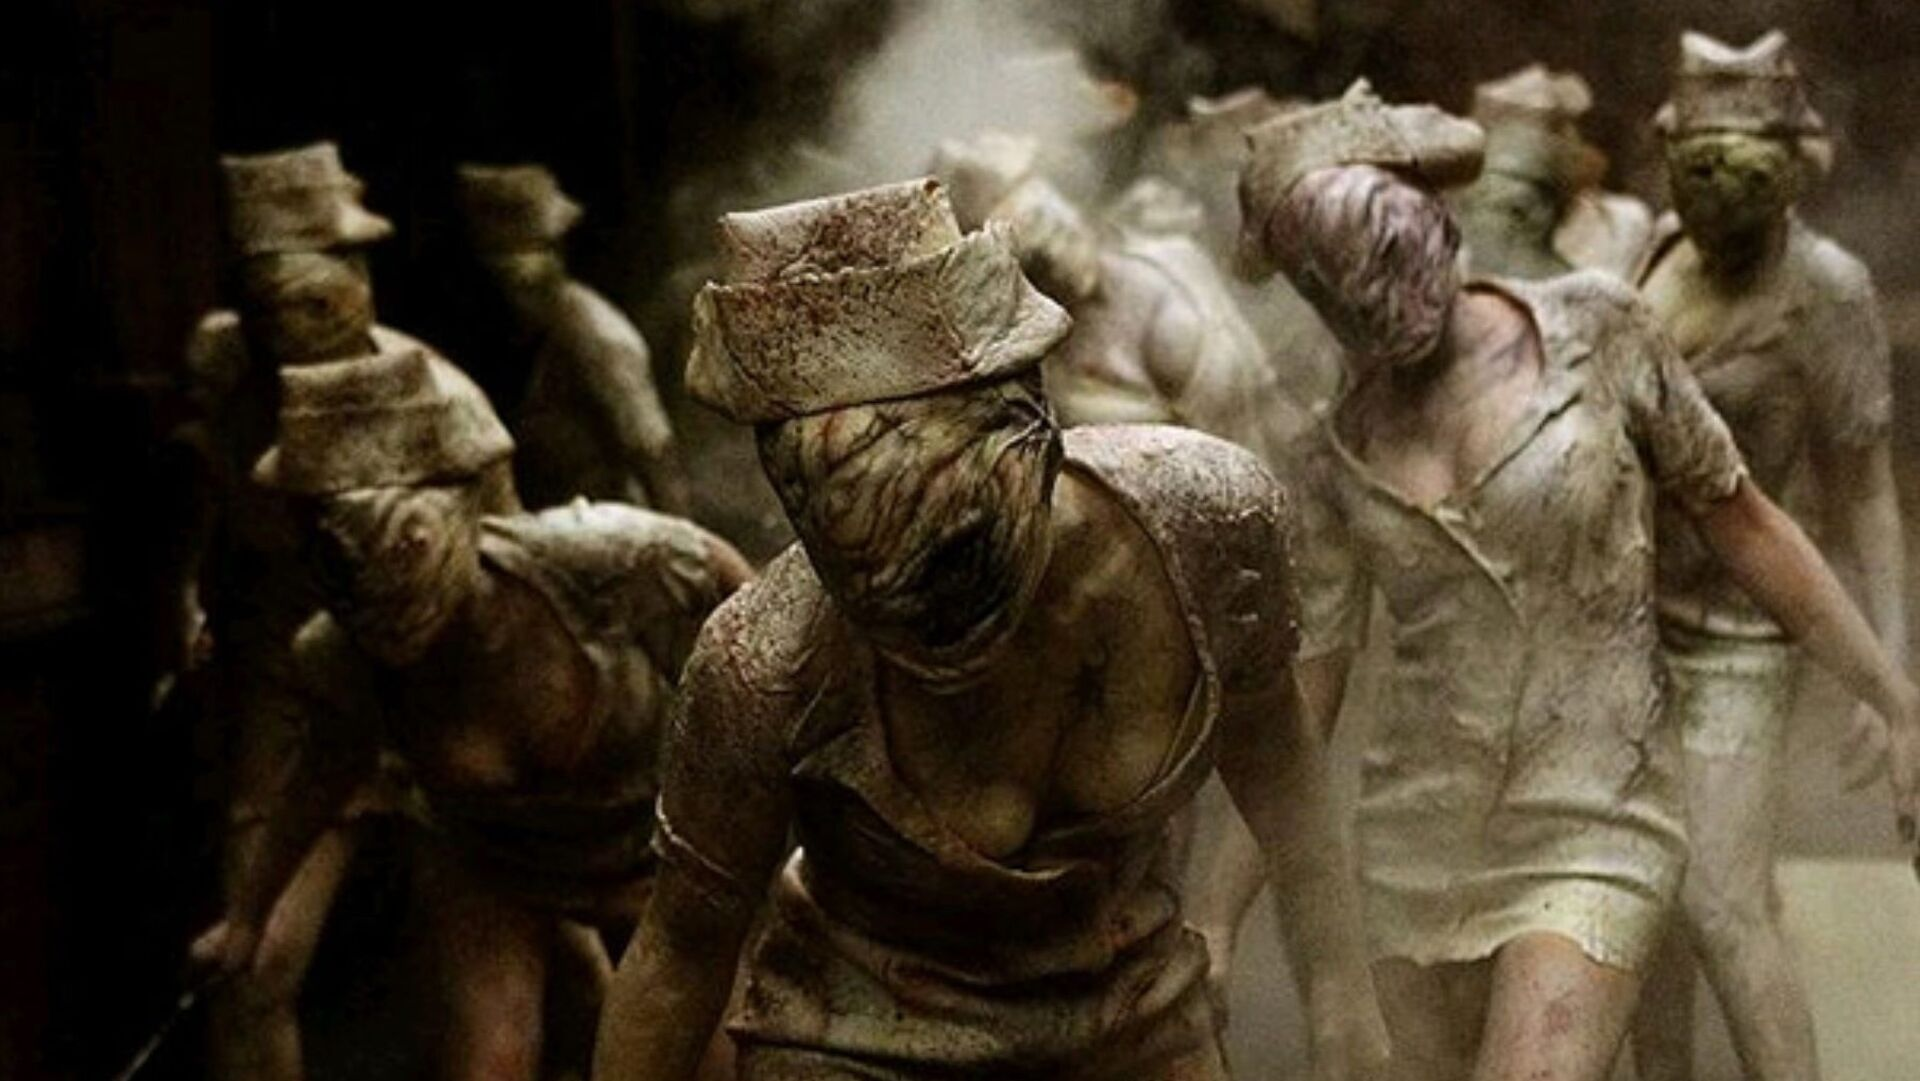 There S Another Silent Hill Movie In Development Eurogamer Net